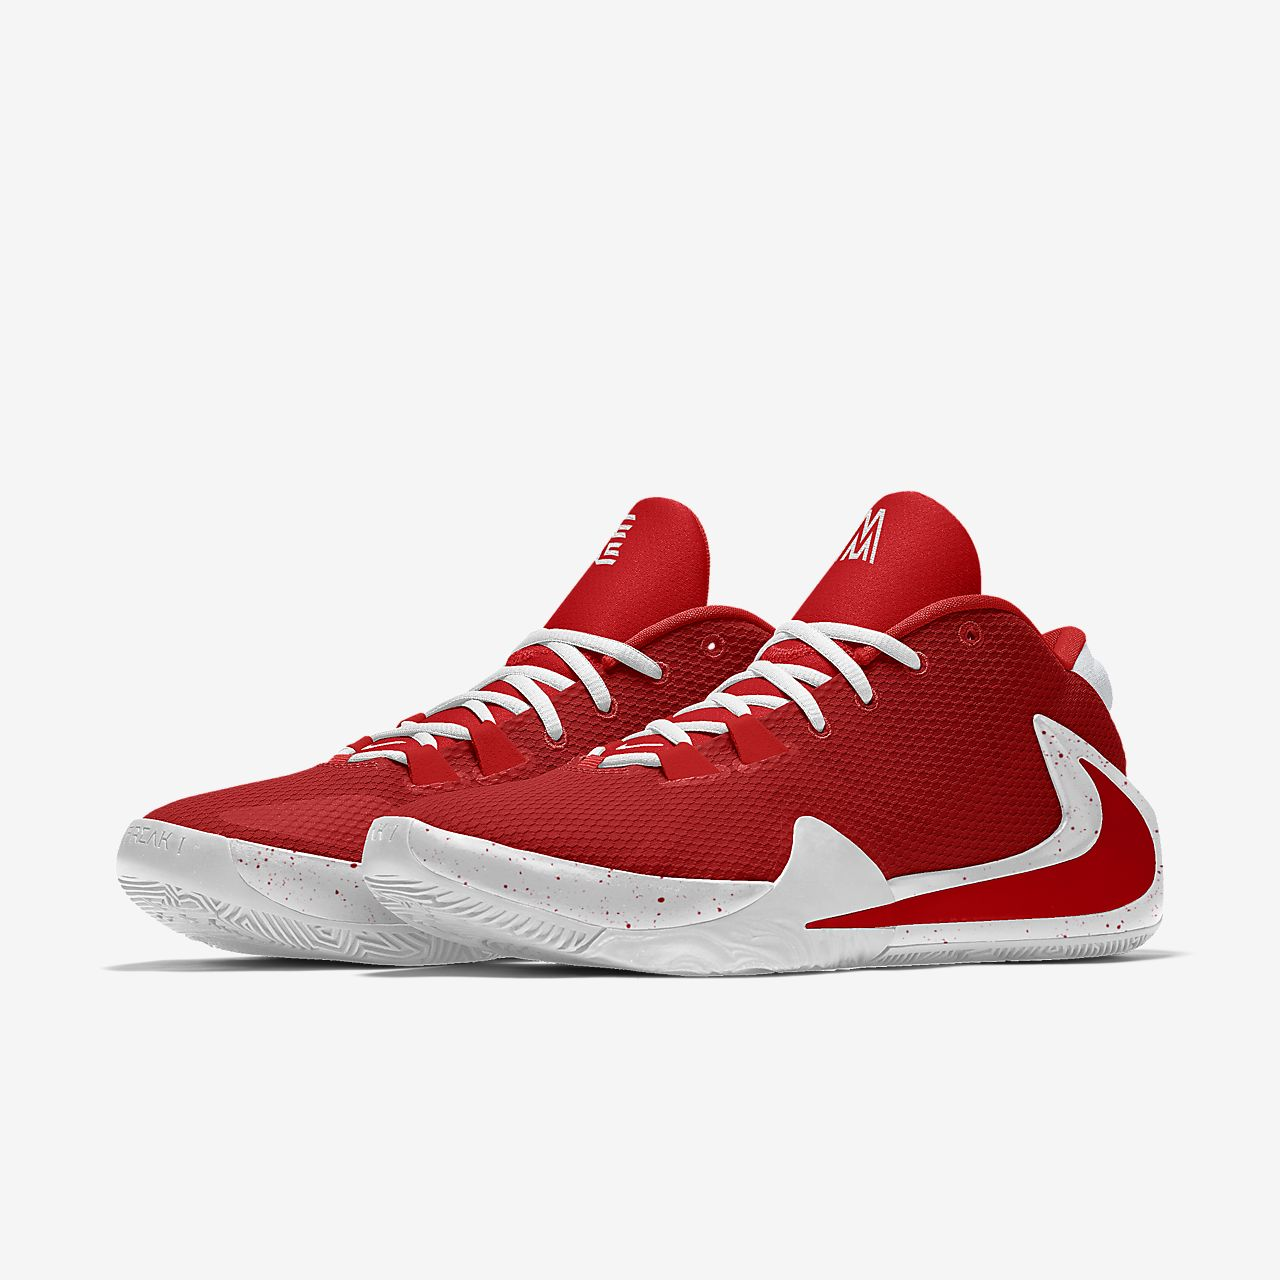 Scarpa da basket personalizzabile Nike Zoom Freak 1 By You